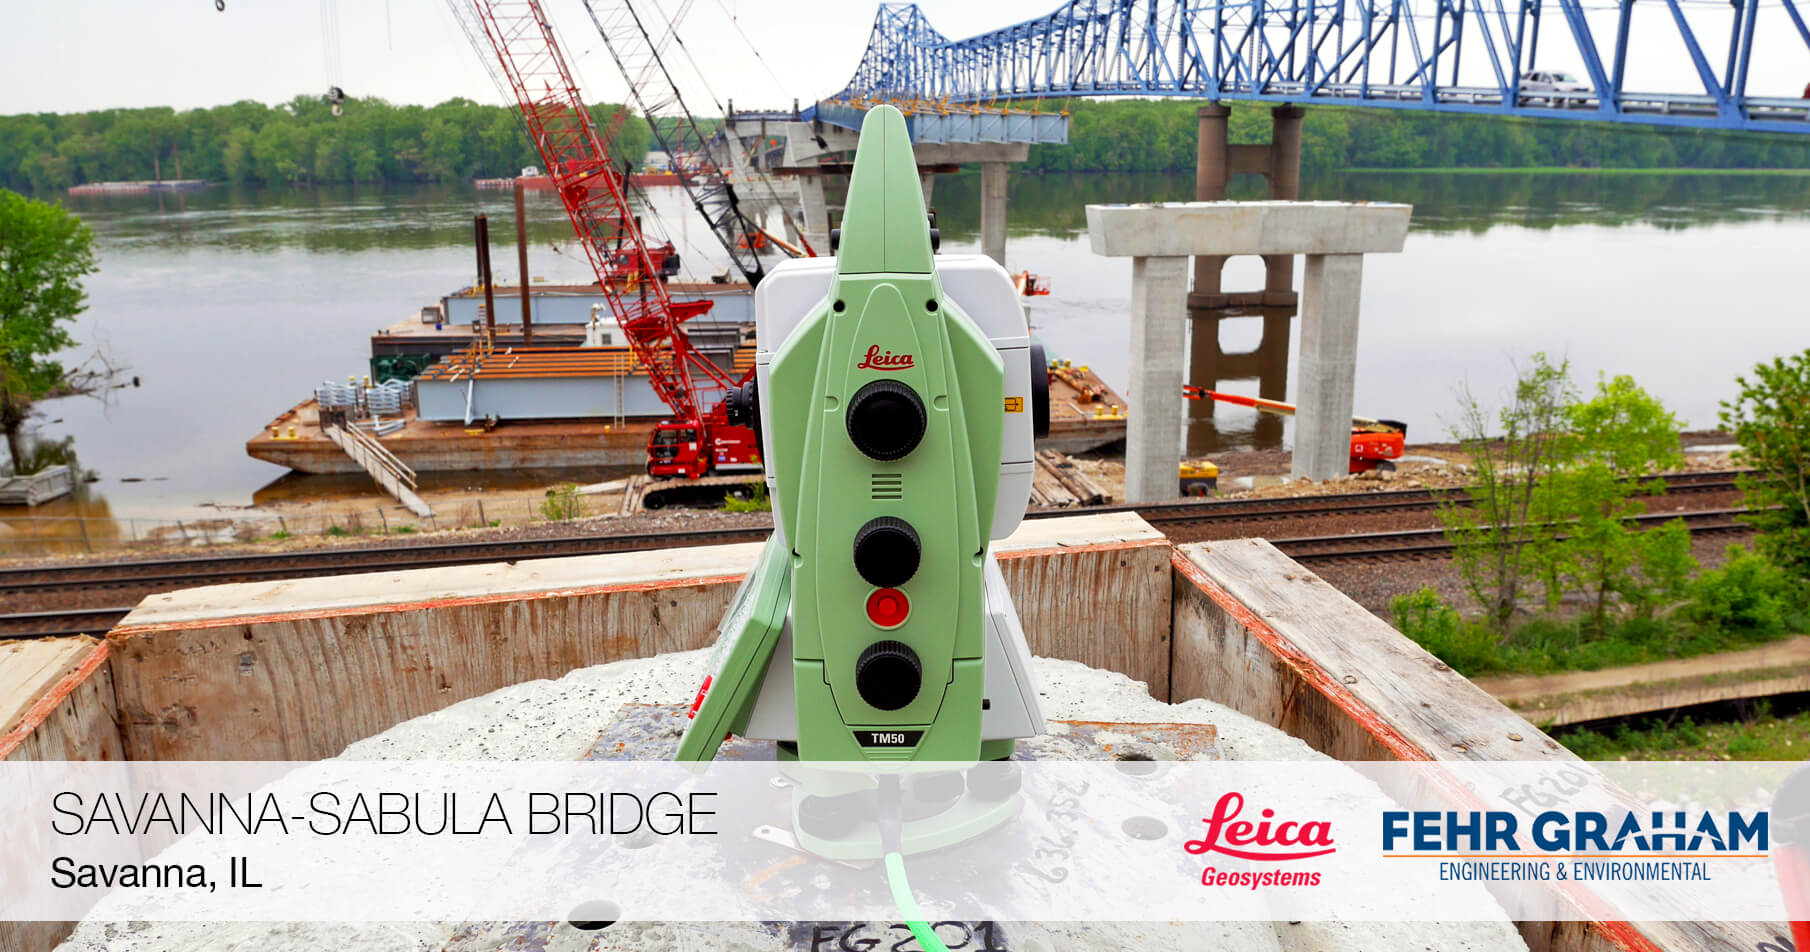 Project Highlight: Savanna-Sabula Bridge